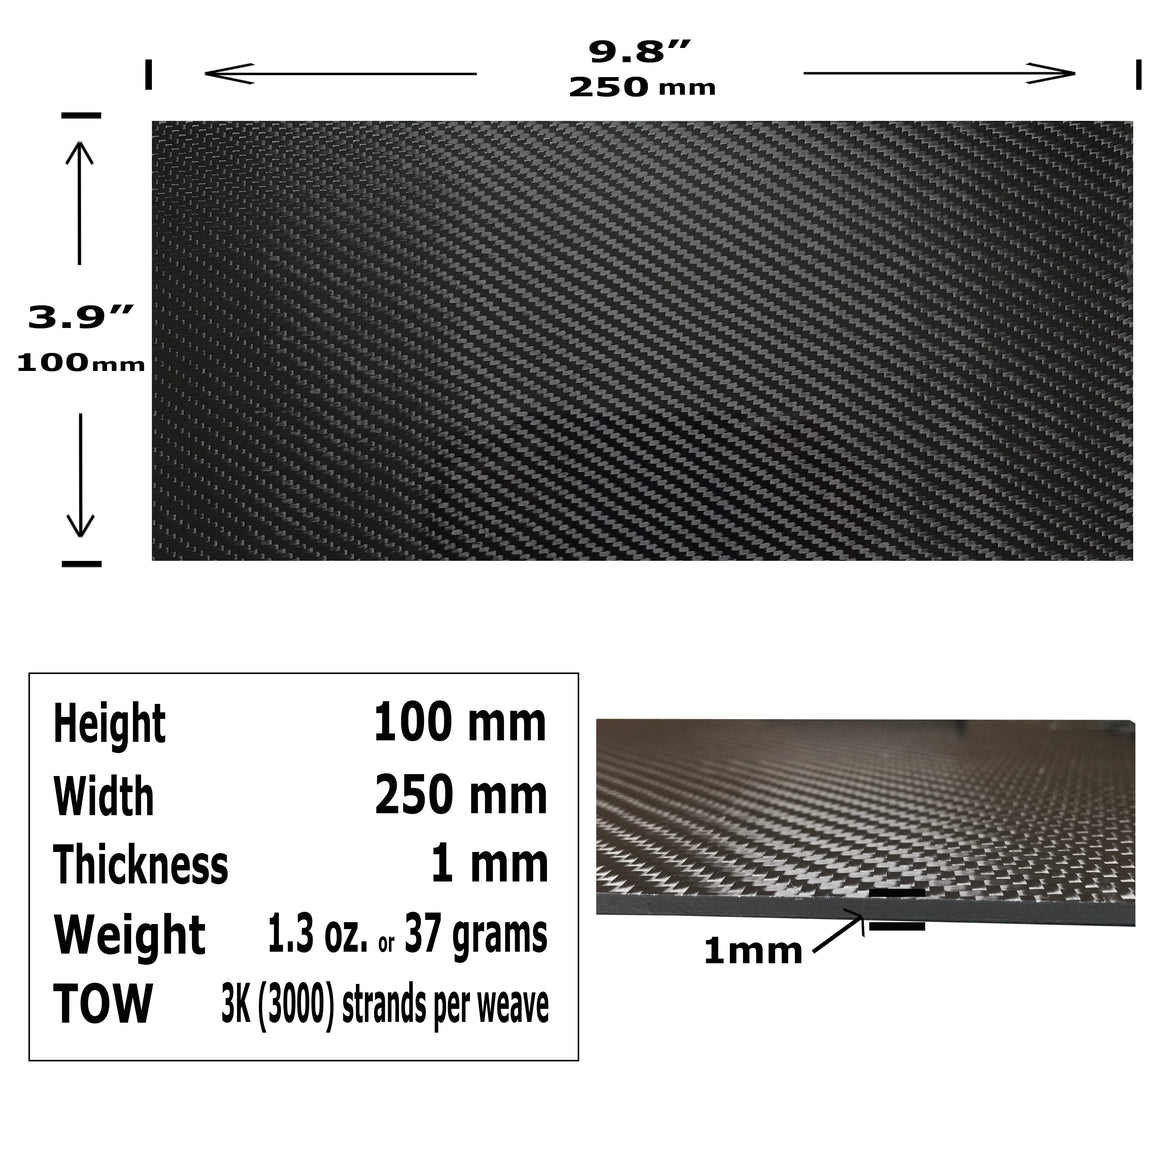 Carbon Fiber Plating  - 100mm x 250mm x 1mm - 3K Carbon Fiber Plate High Gloss Finish